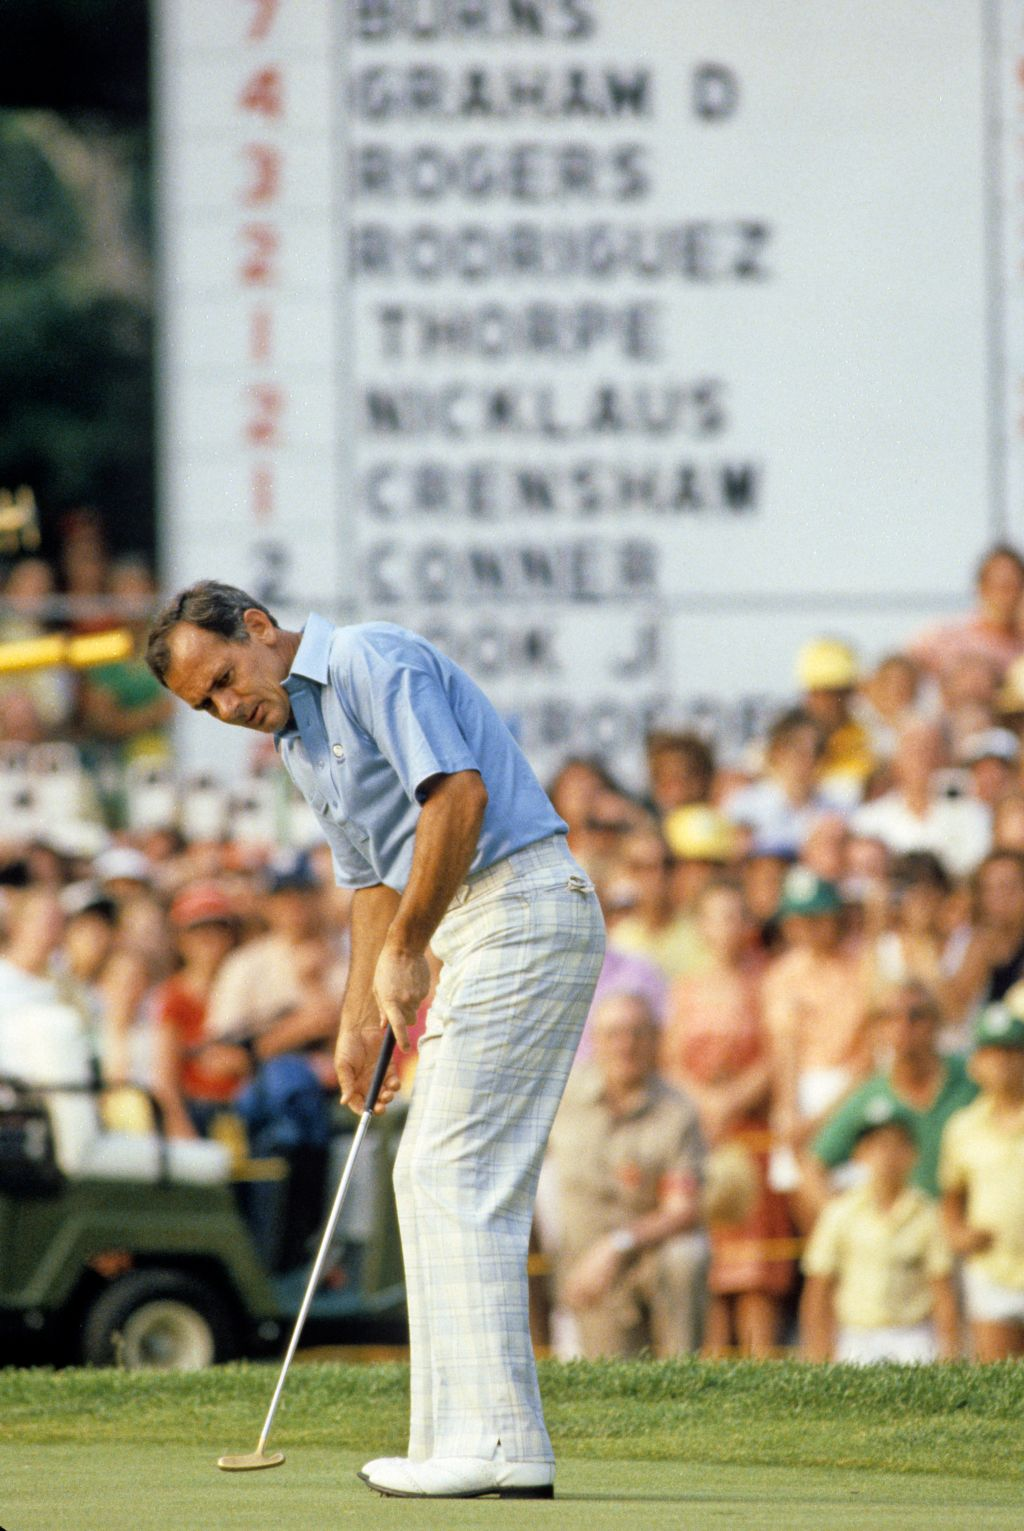 David Graham putting for victory at the 1981 US Open